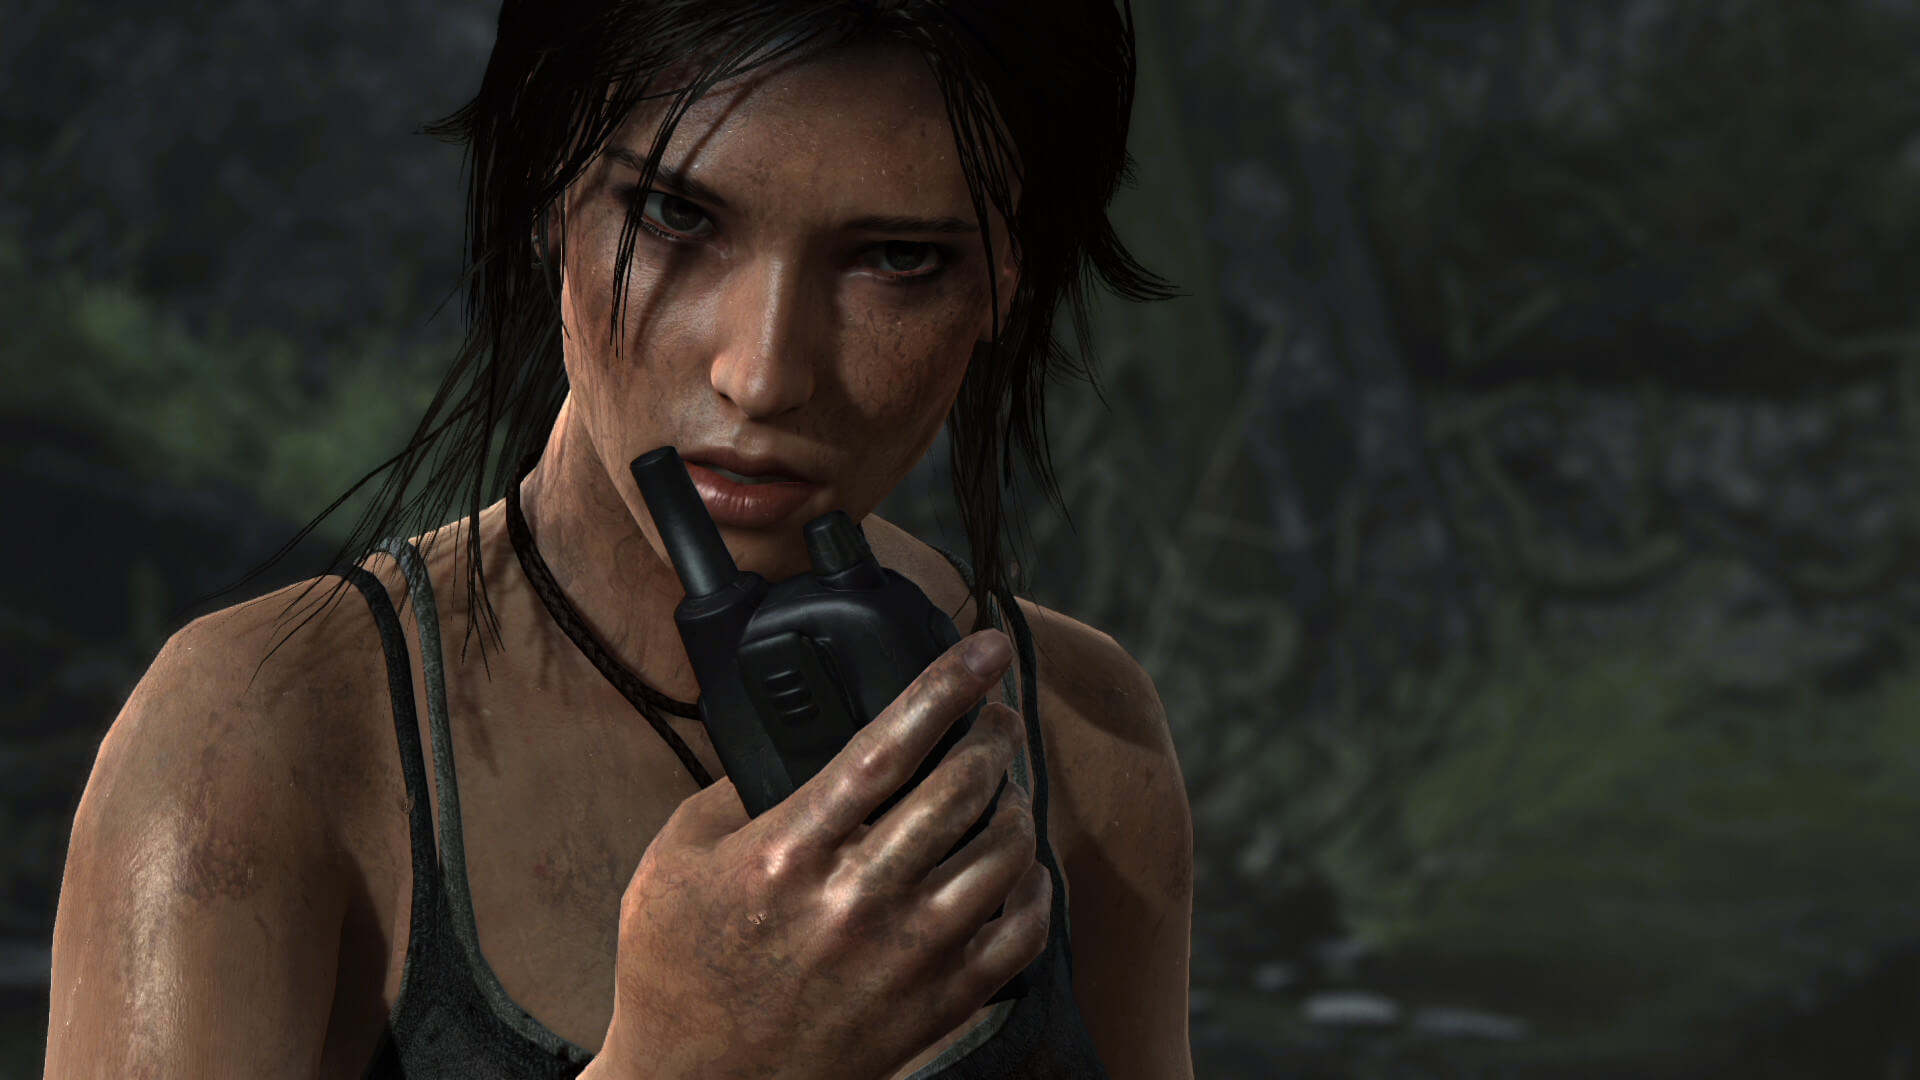 Lara Croft in 2014's Tomb Raider Definitive Edition.